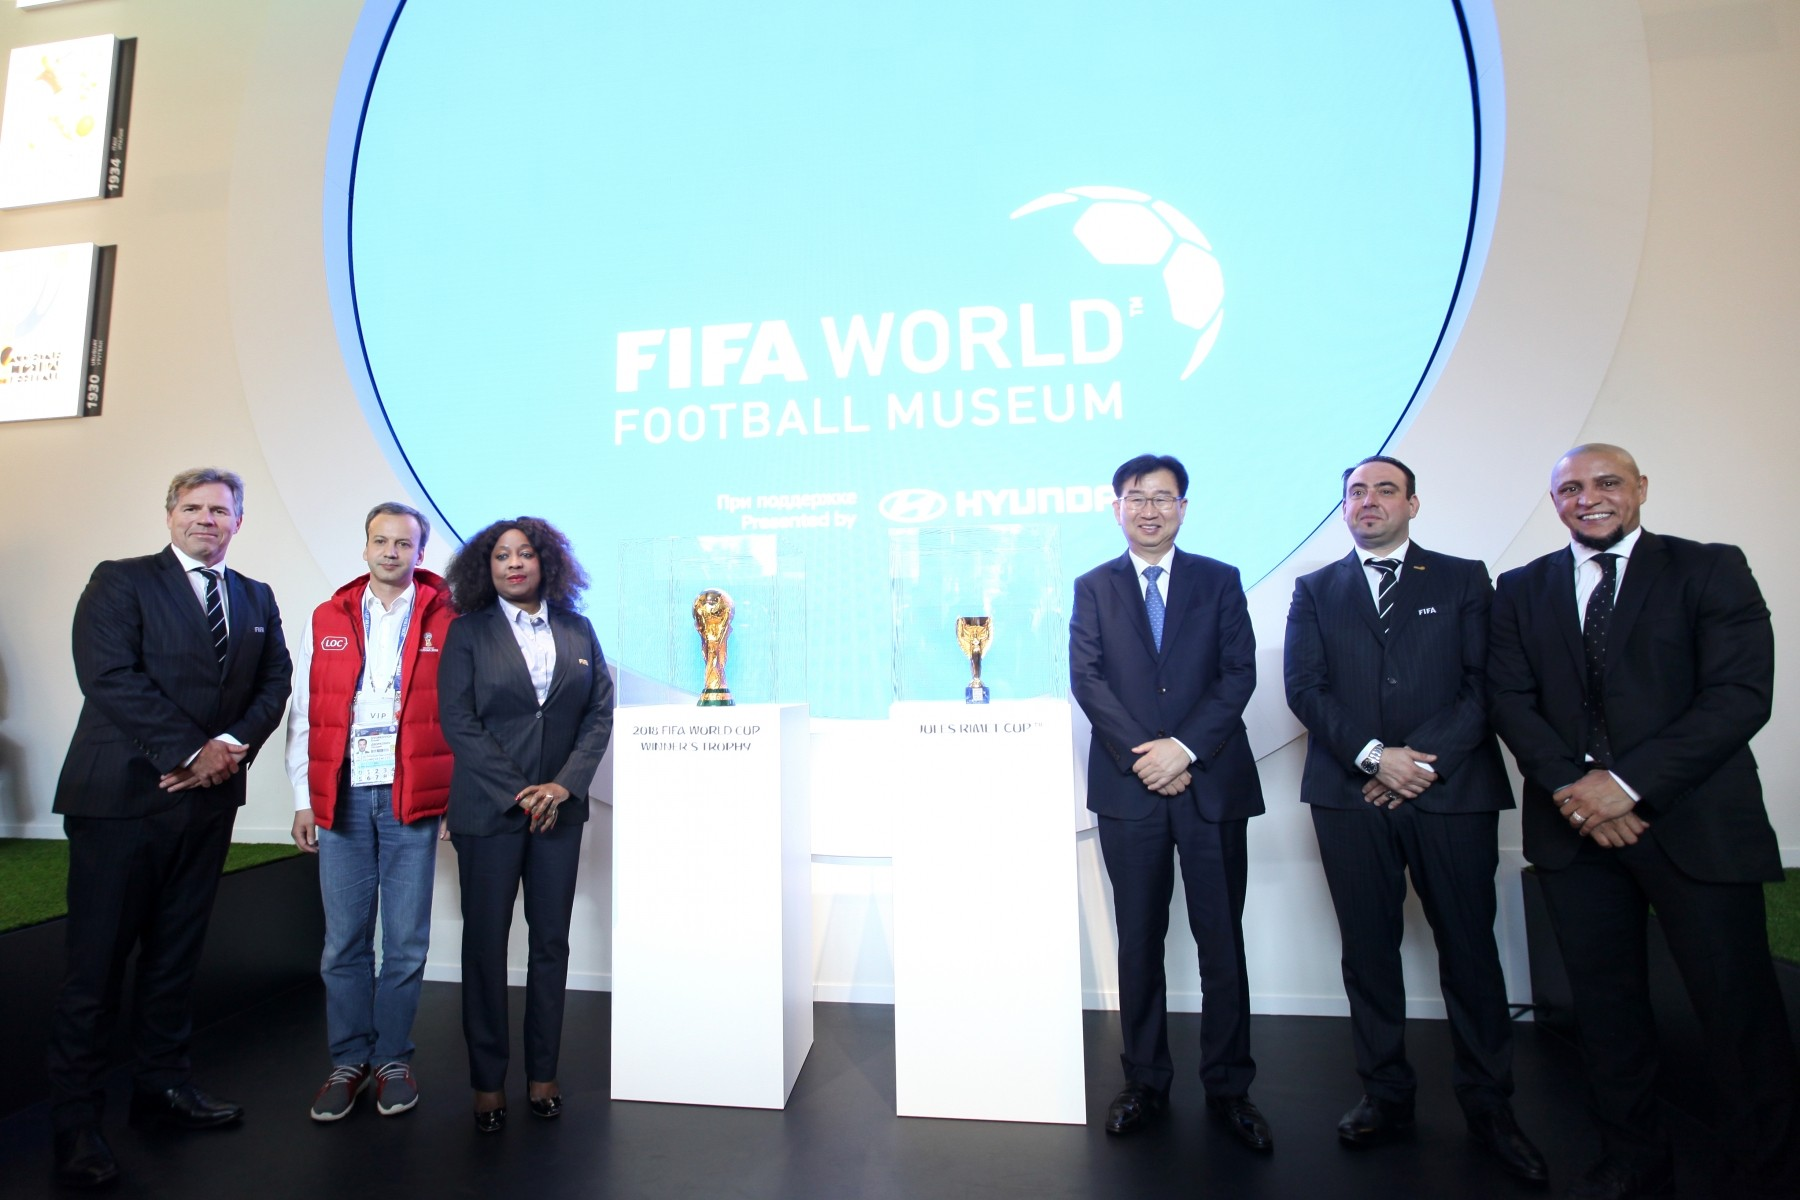 FIFA World Football Museum Presented By Hyundai